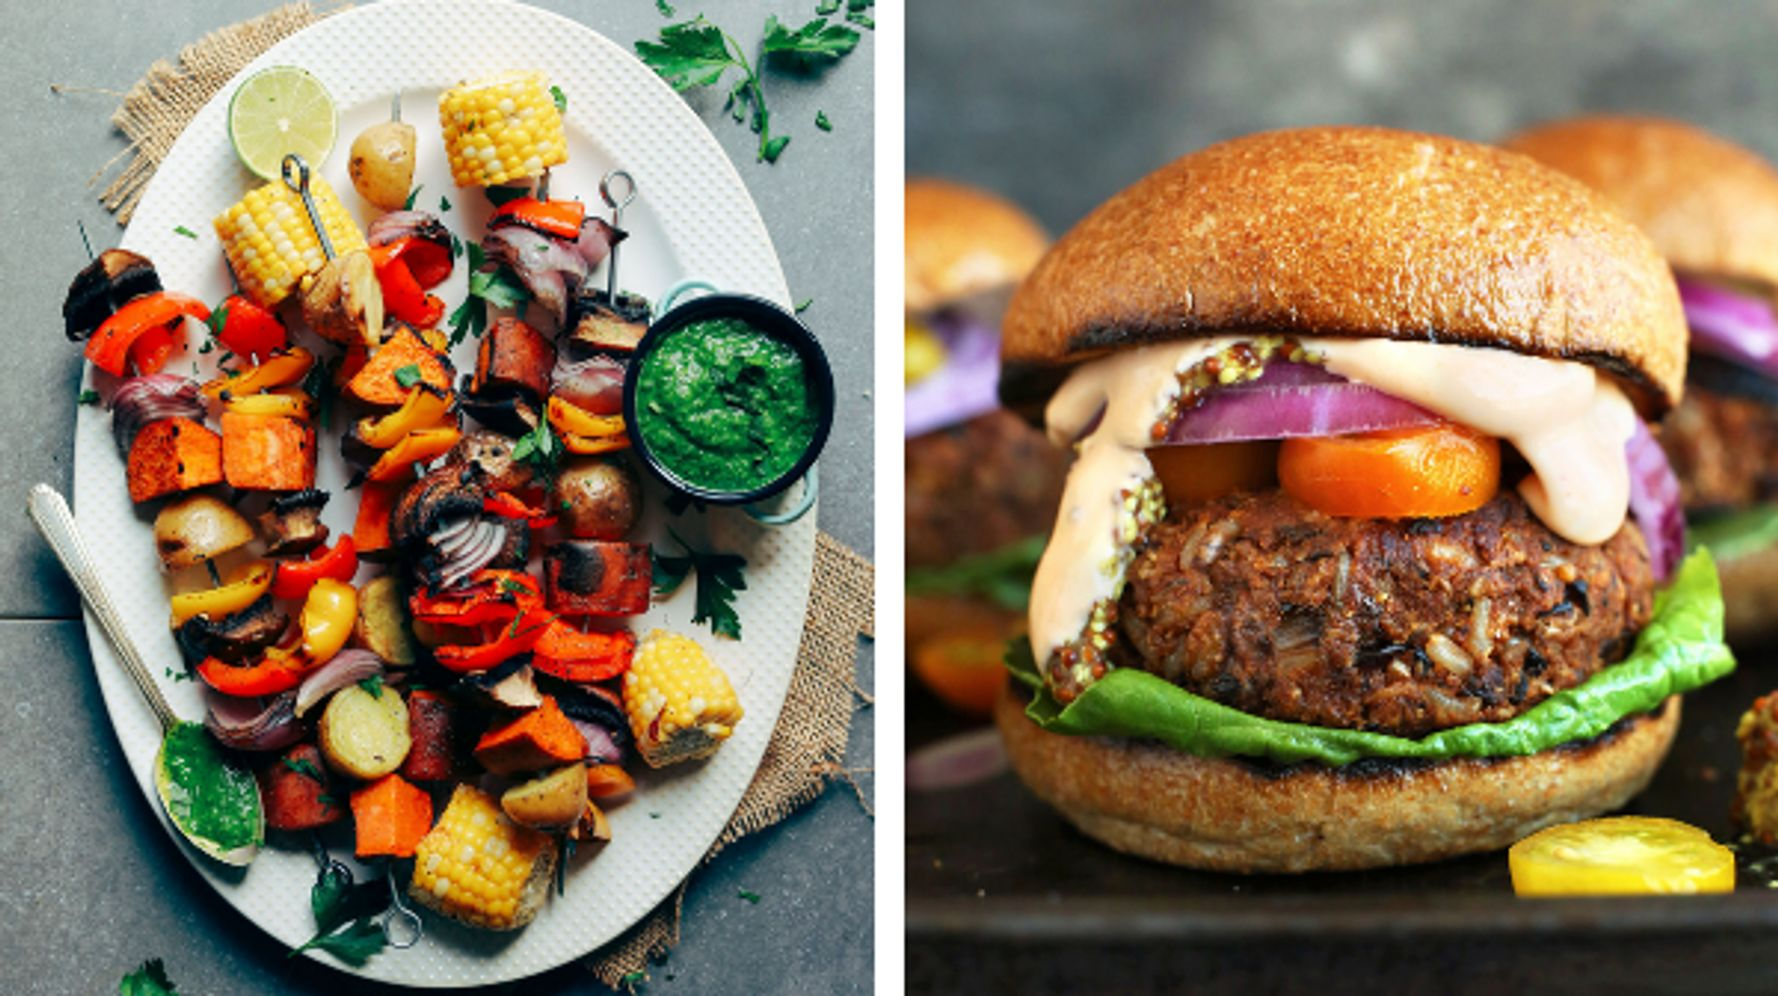 Vegan And Vegetarian Grilling Recipes For A Plant-Based Cookout